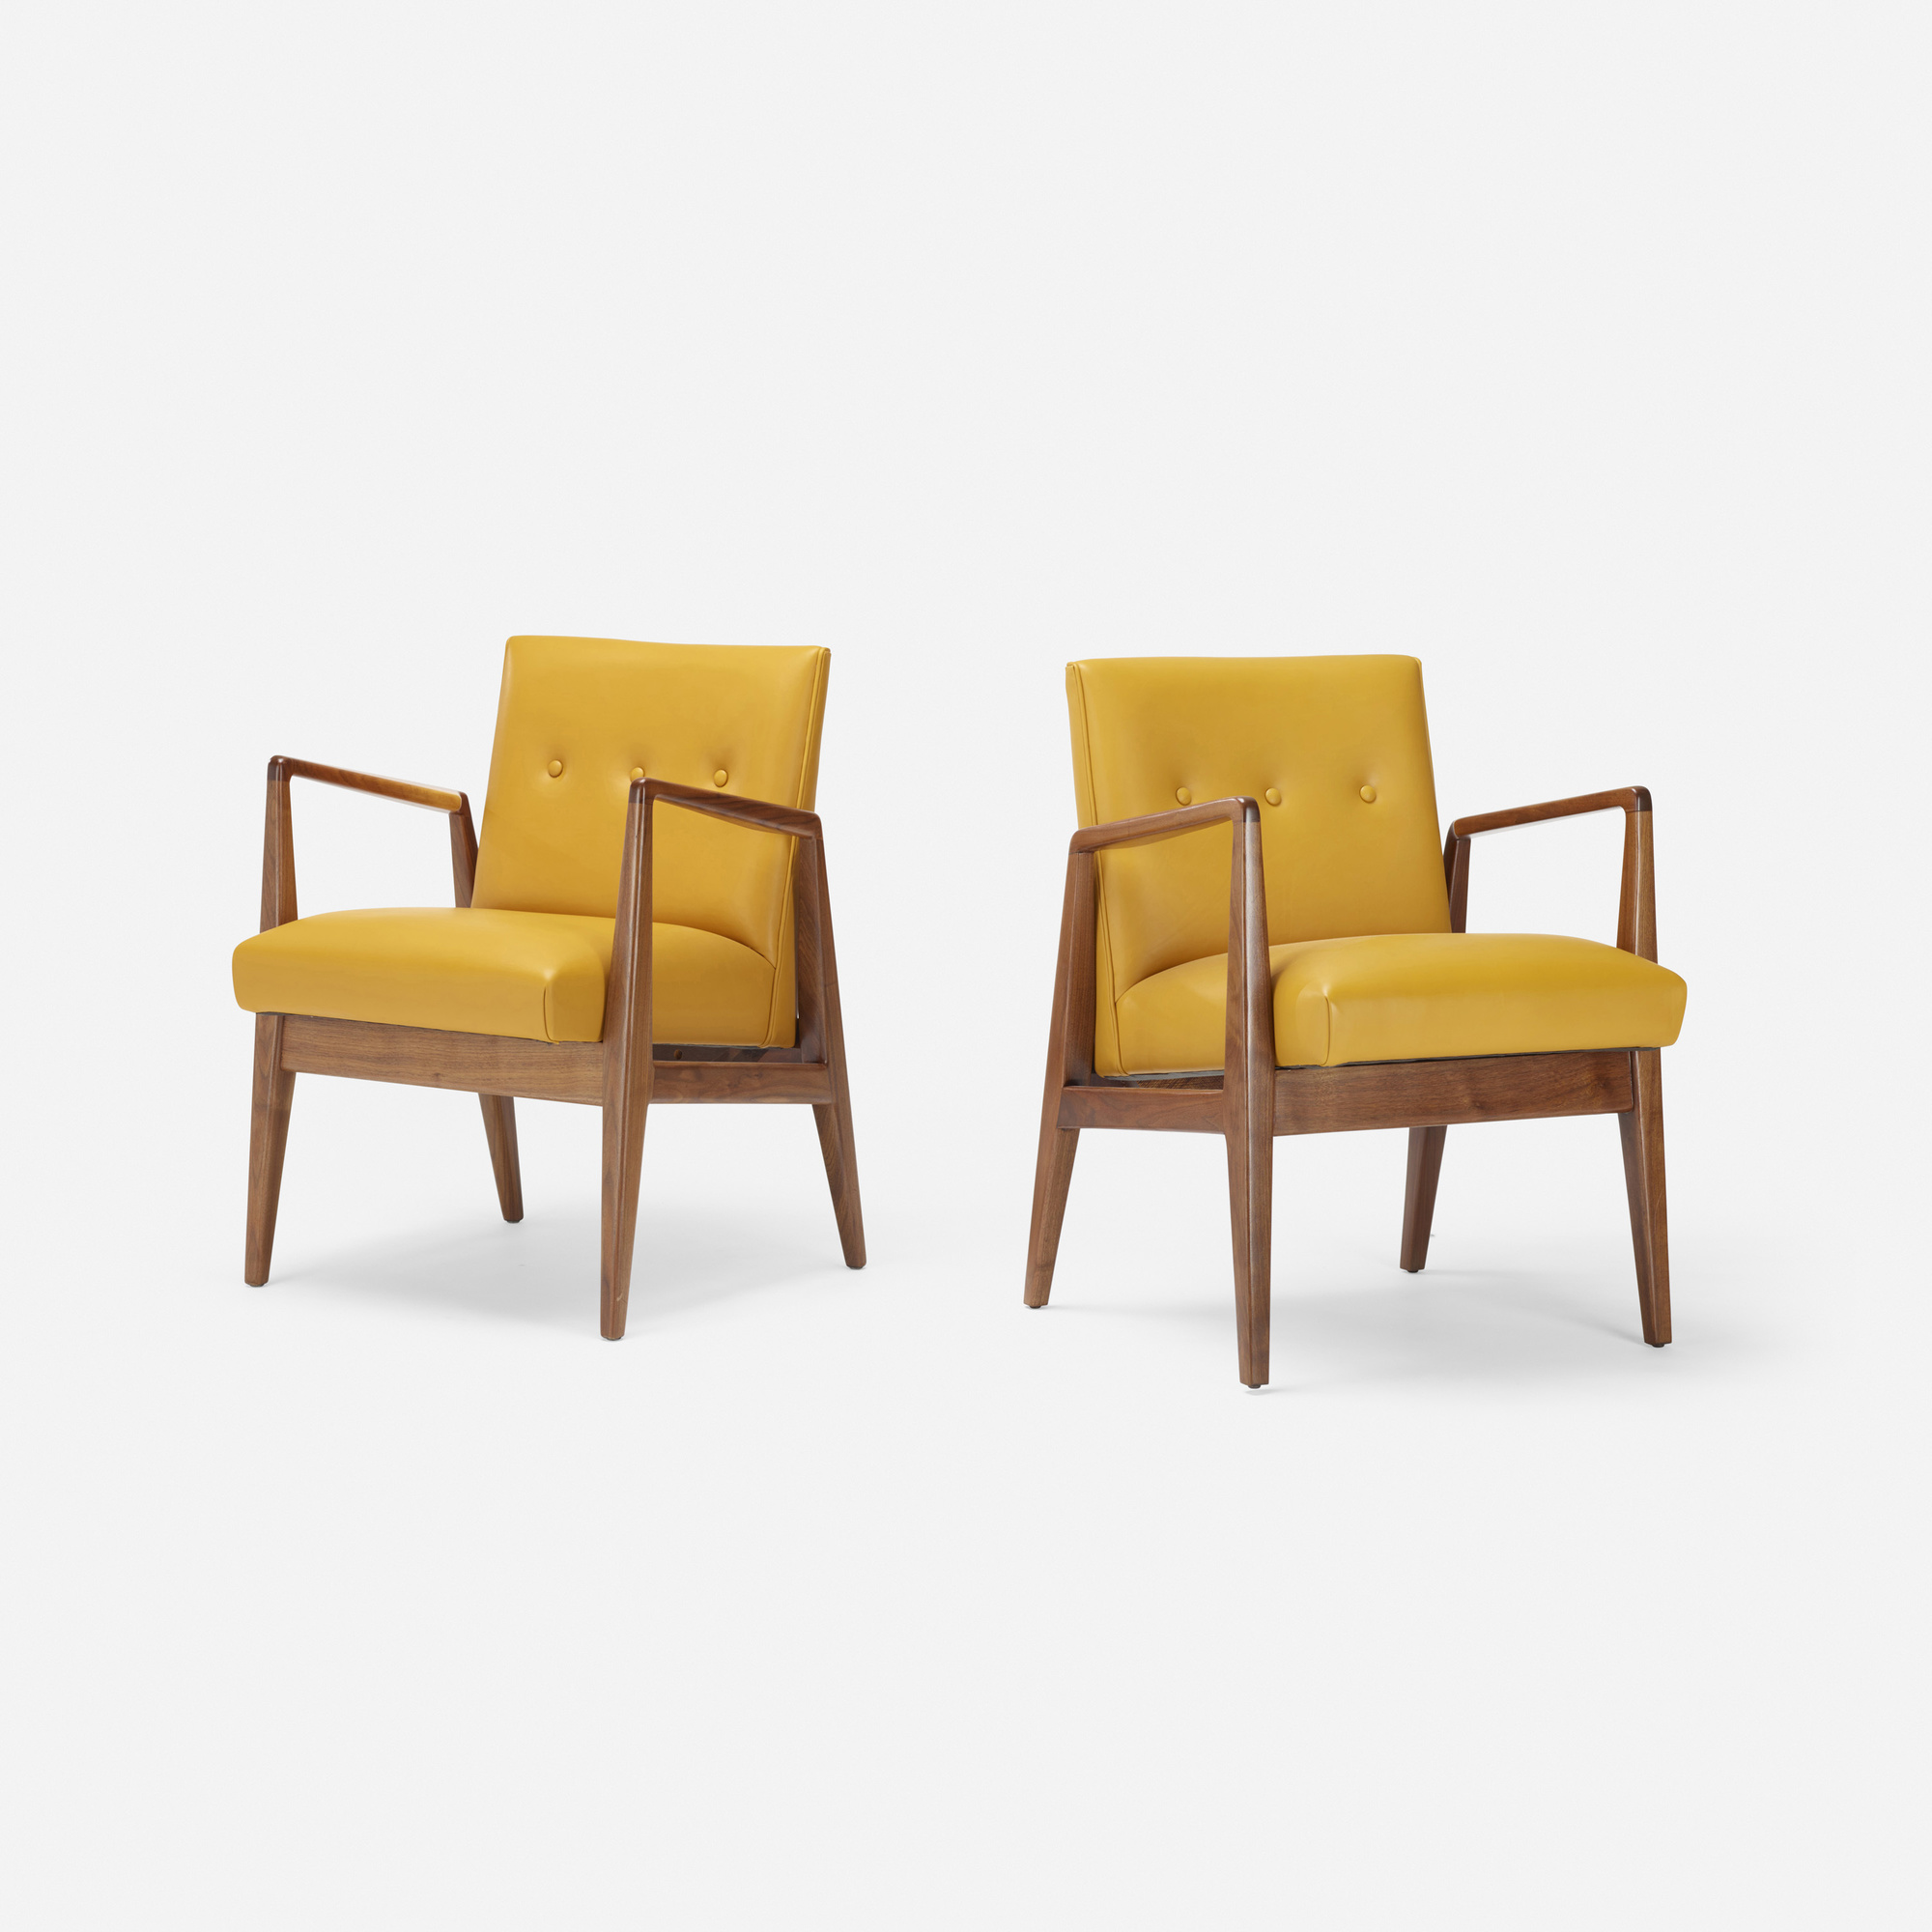 683: Jens Risom / lounge chairs, pair (1 of 2)